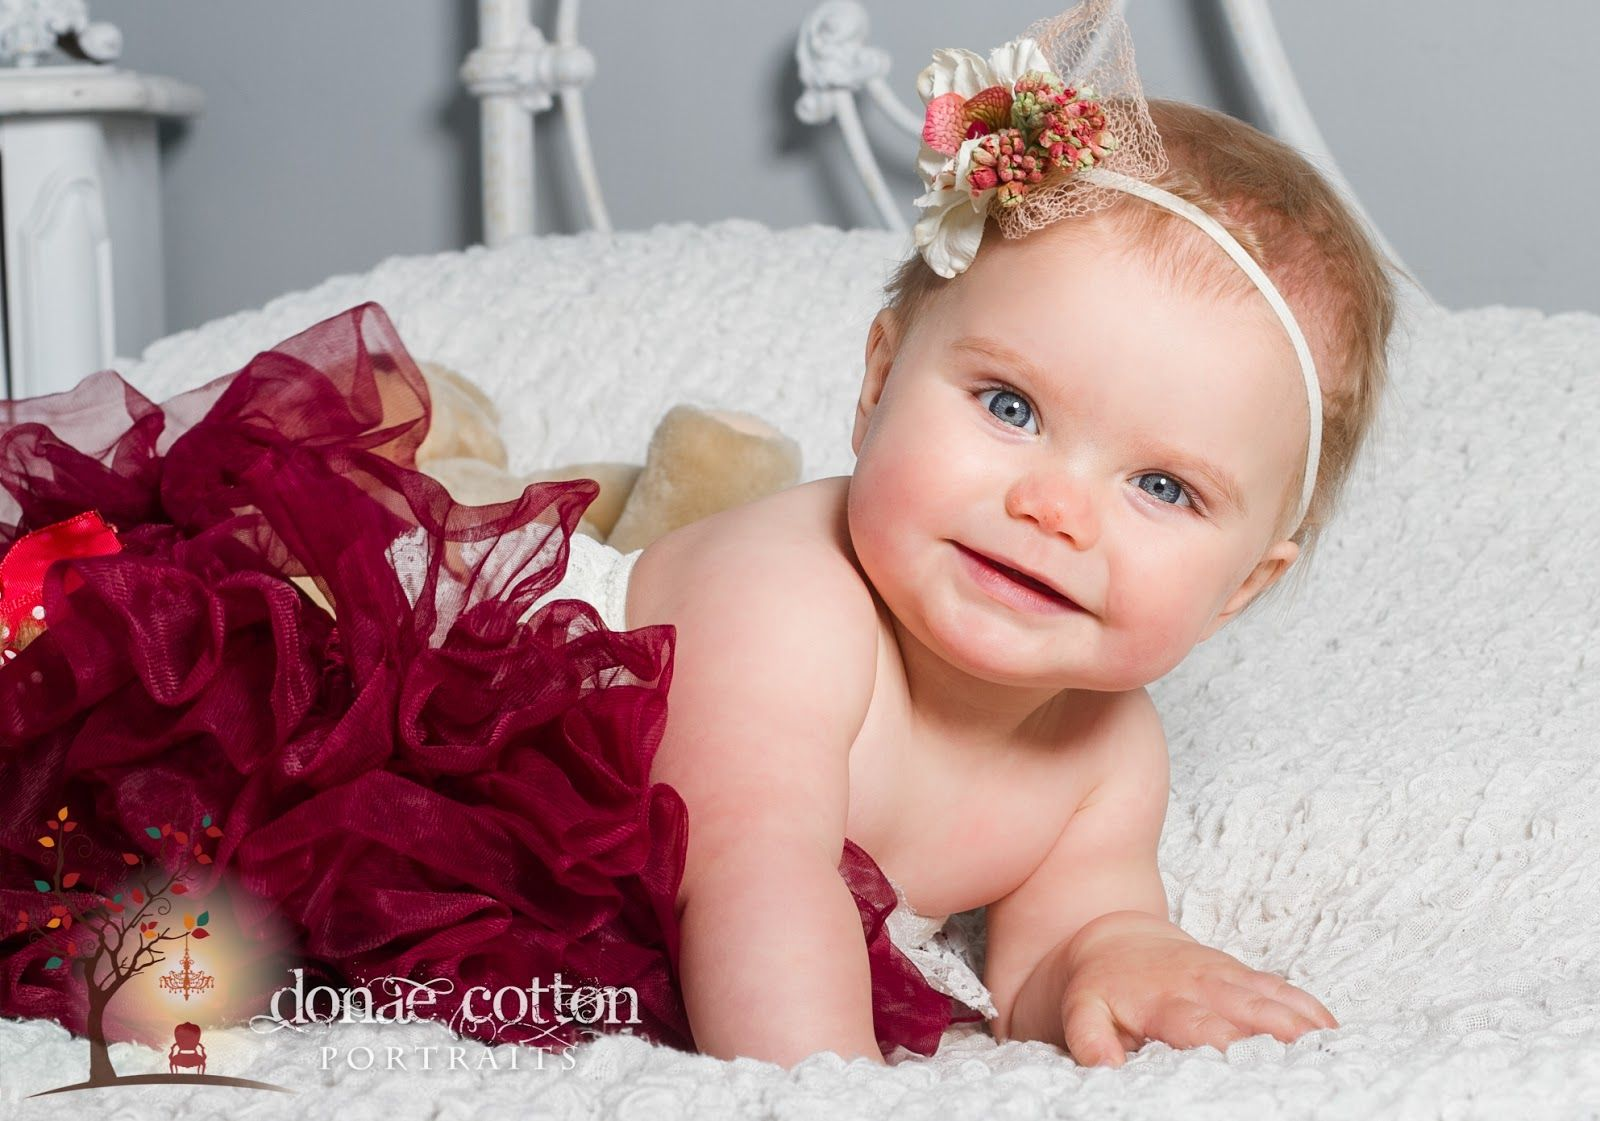 donae cotton photography what a doll!! www.donaecottonphotography.com